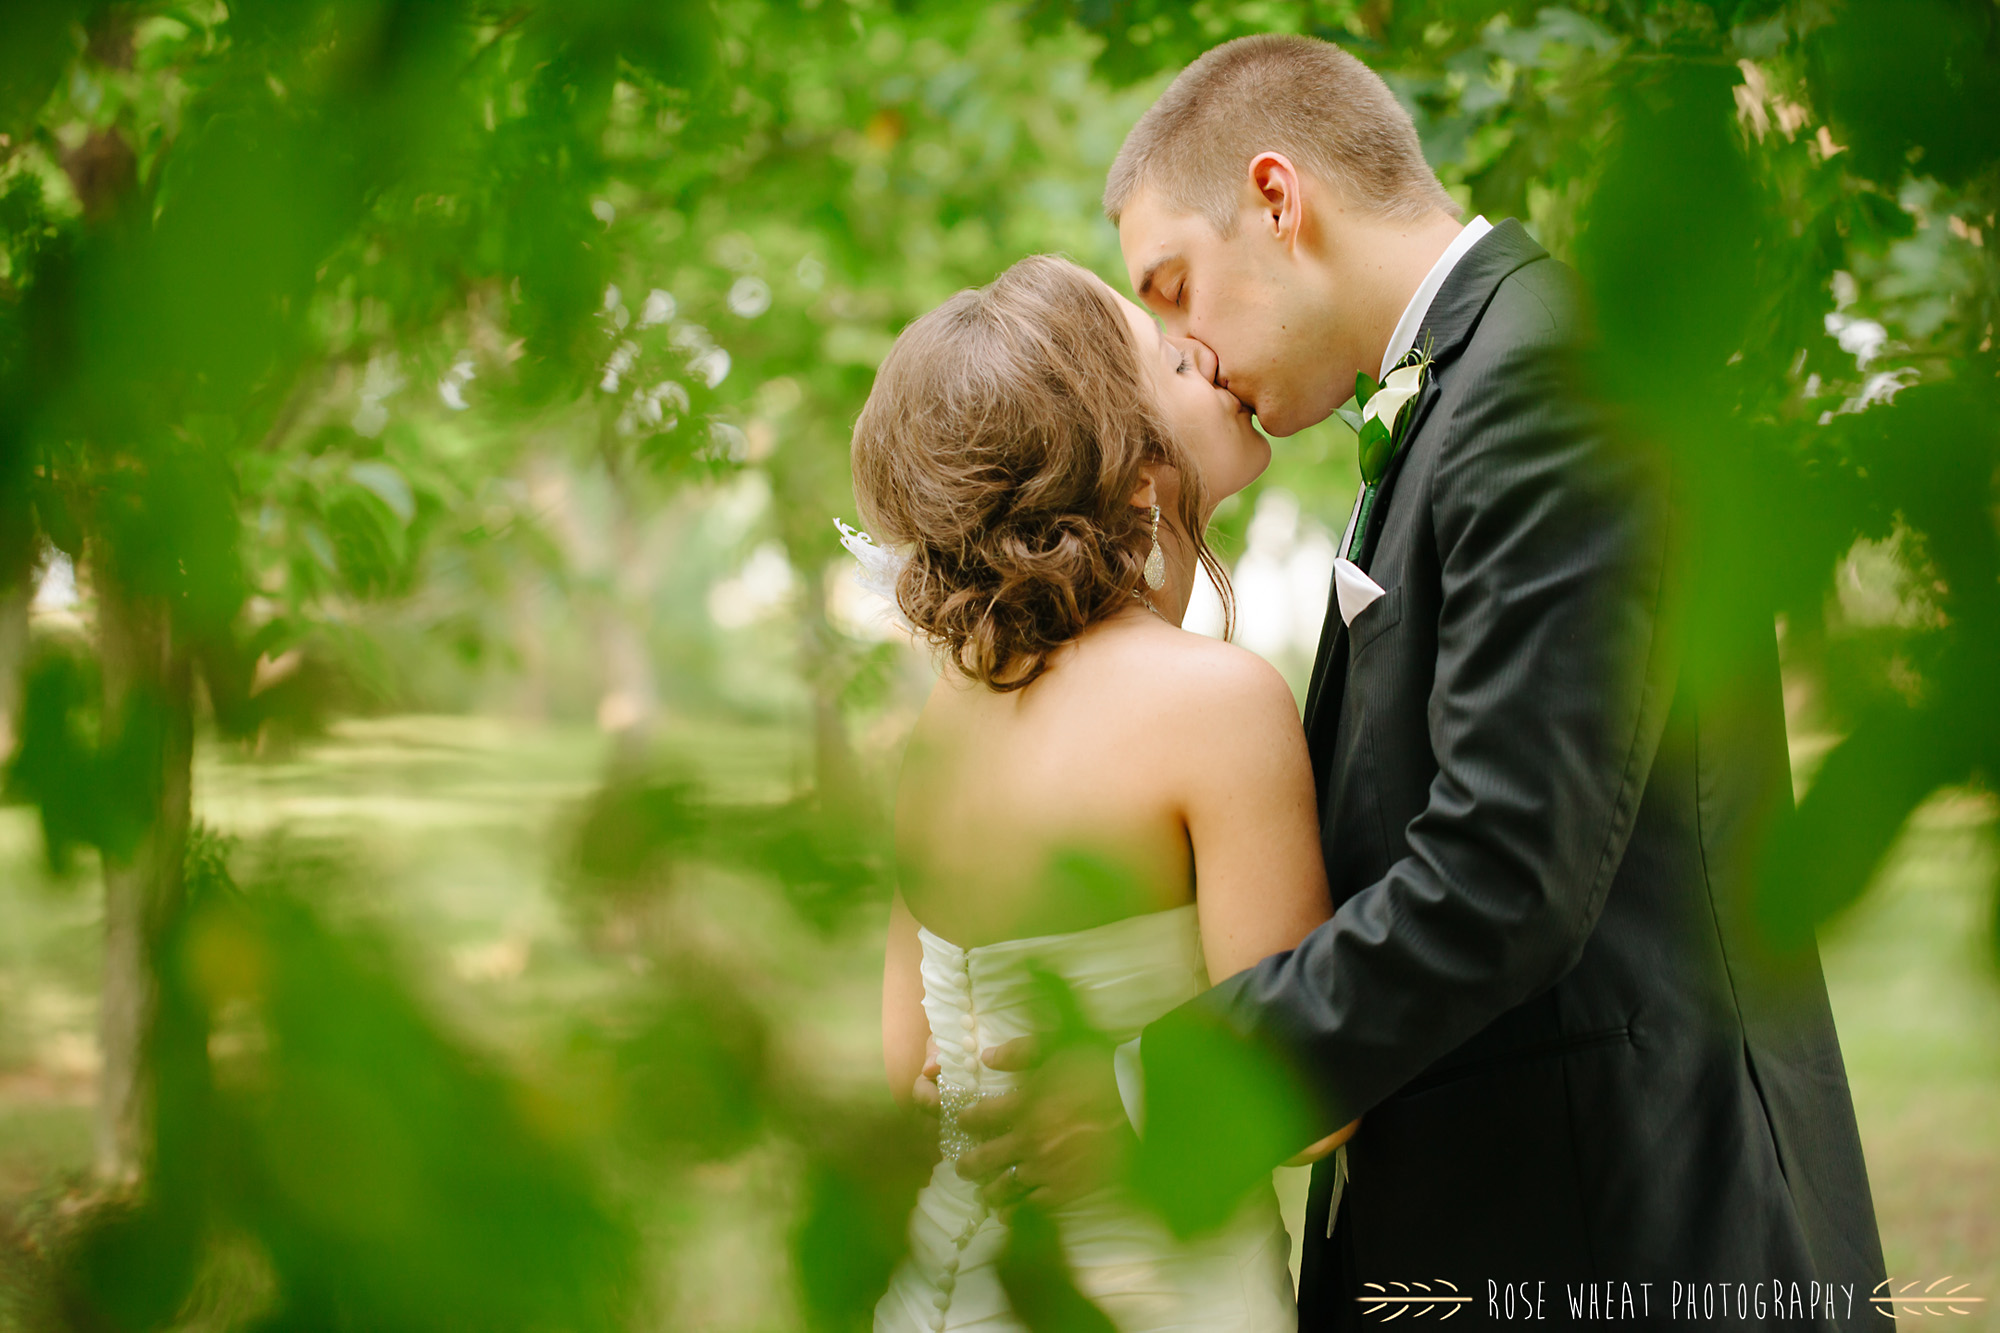 28. seneca_ks_wedding_photography-2.jpg